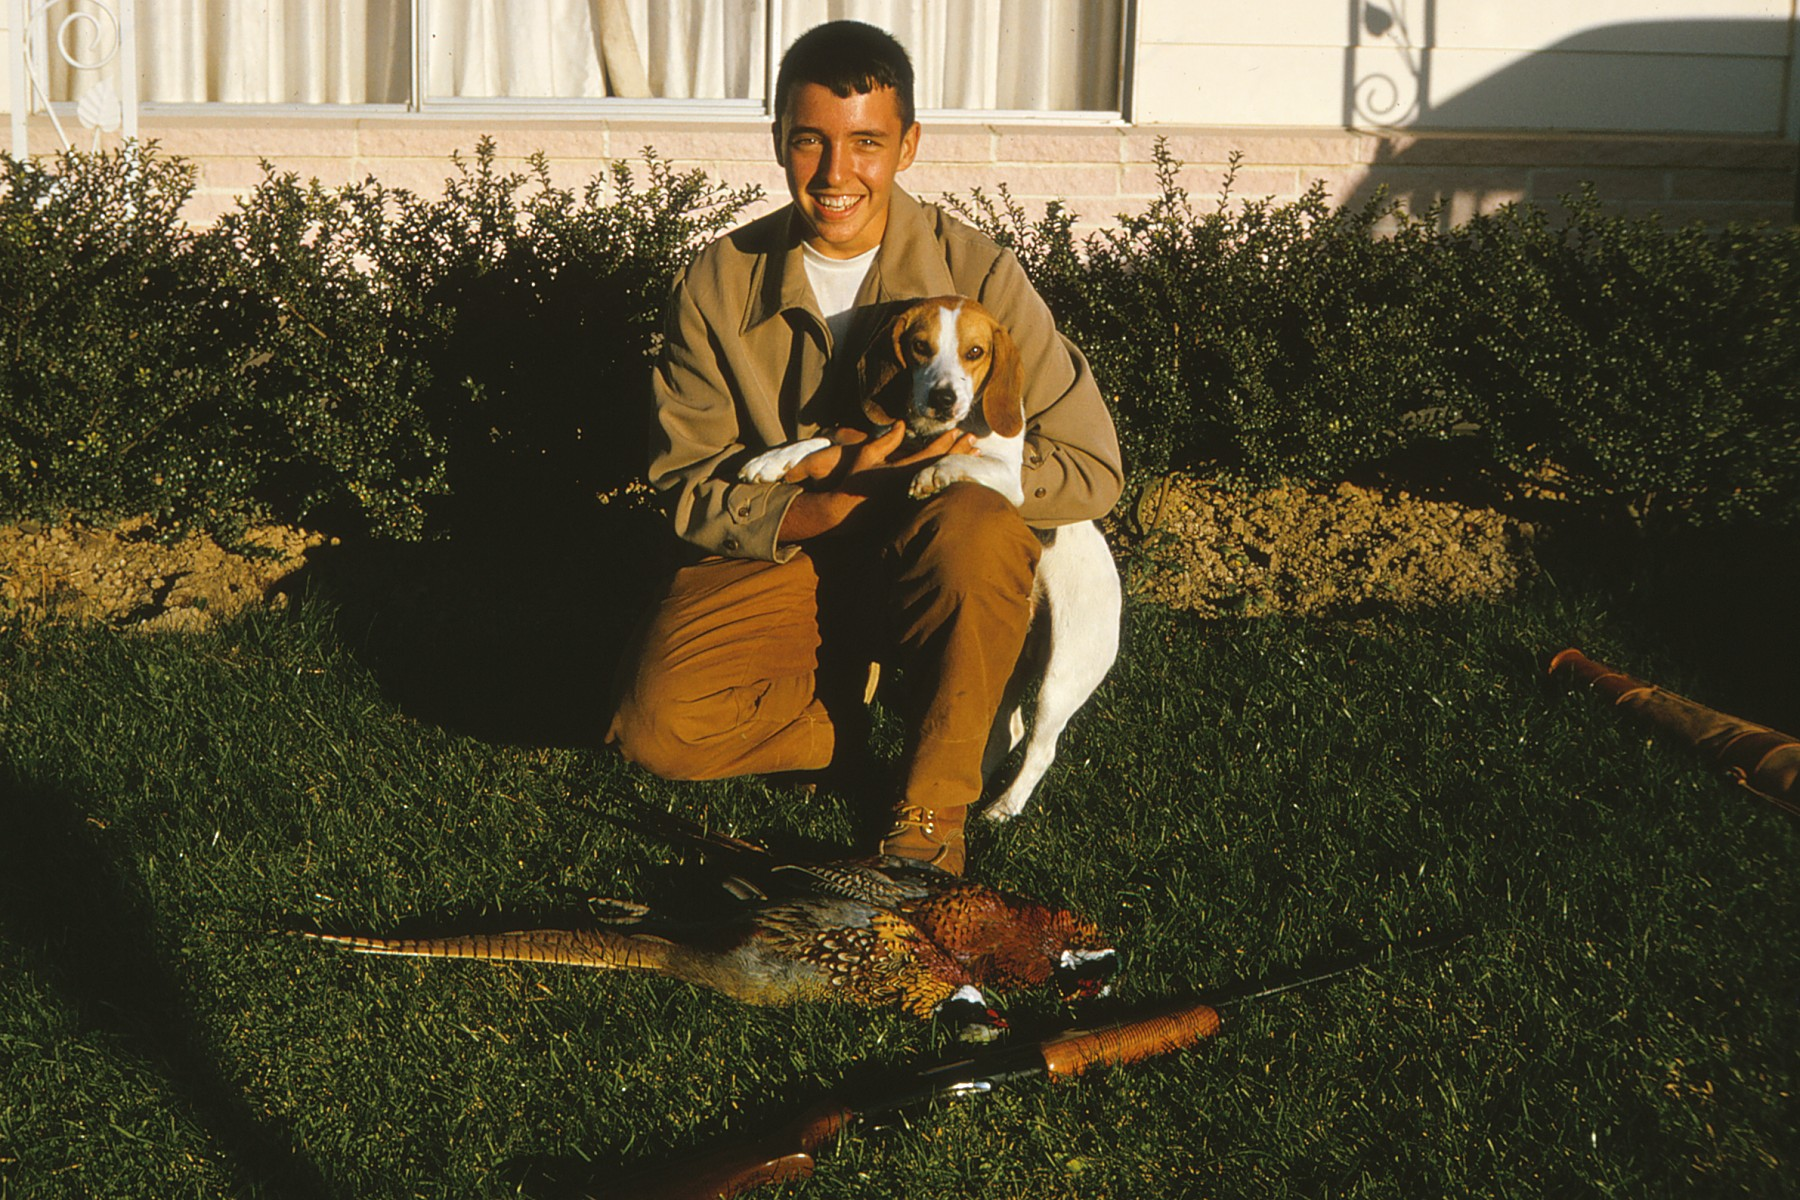 With Spuddy & a brace of pheasants, 1964 PA